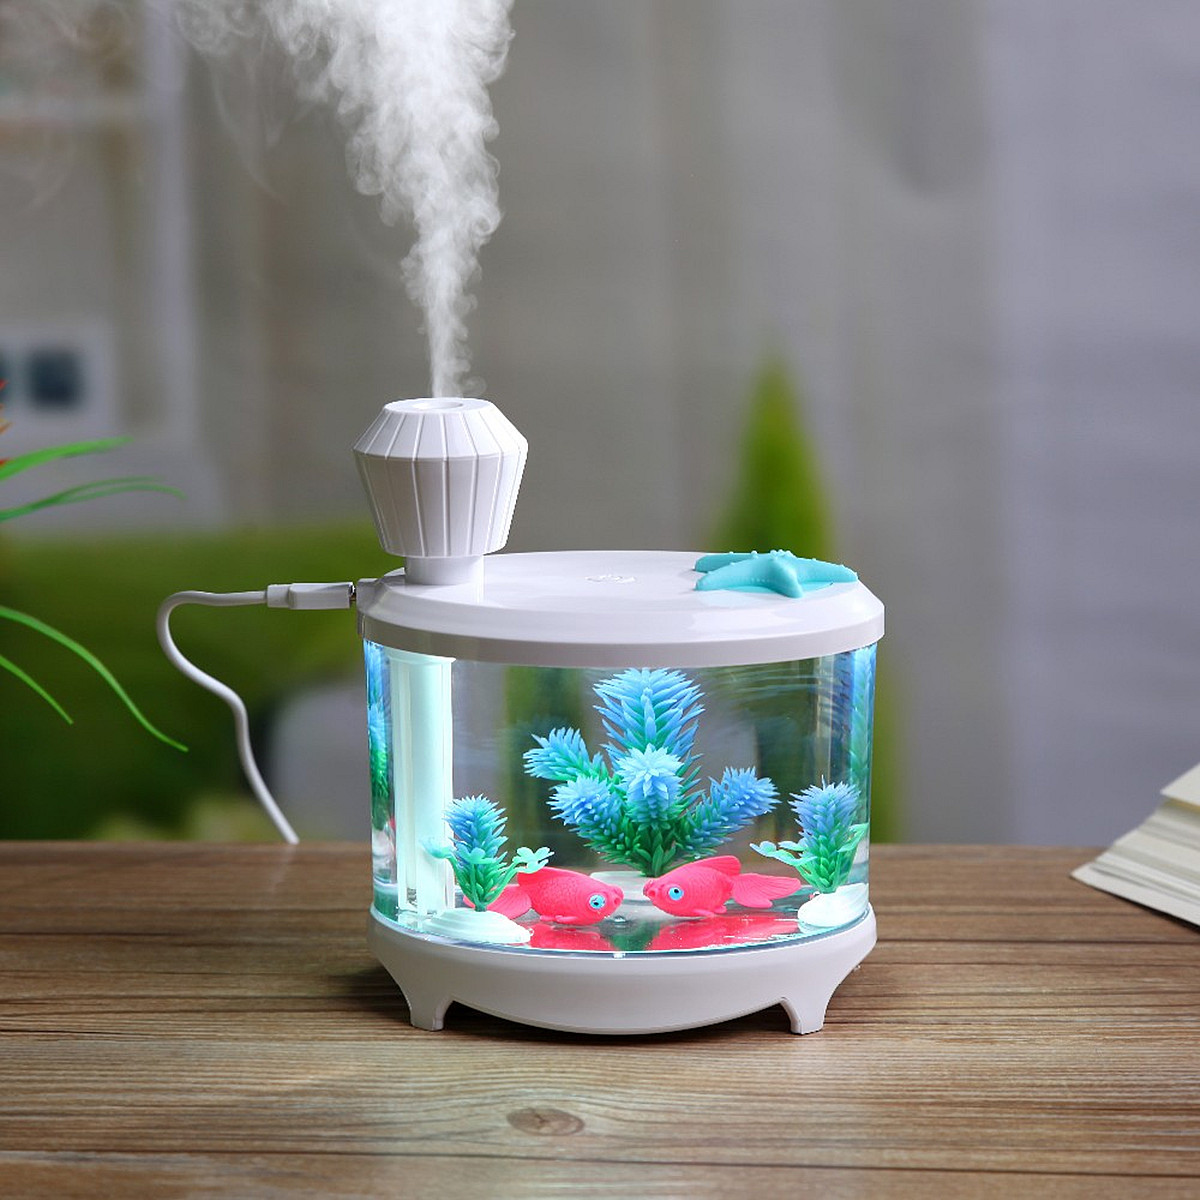 LED Night Light Ultrasonic Air Humidifier 460ML USB Tank Type Essential Oil Aroma Diffuser Atomizer Quality Home / Office